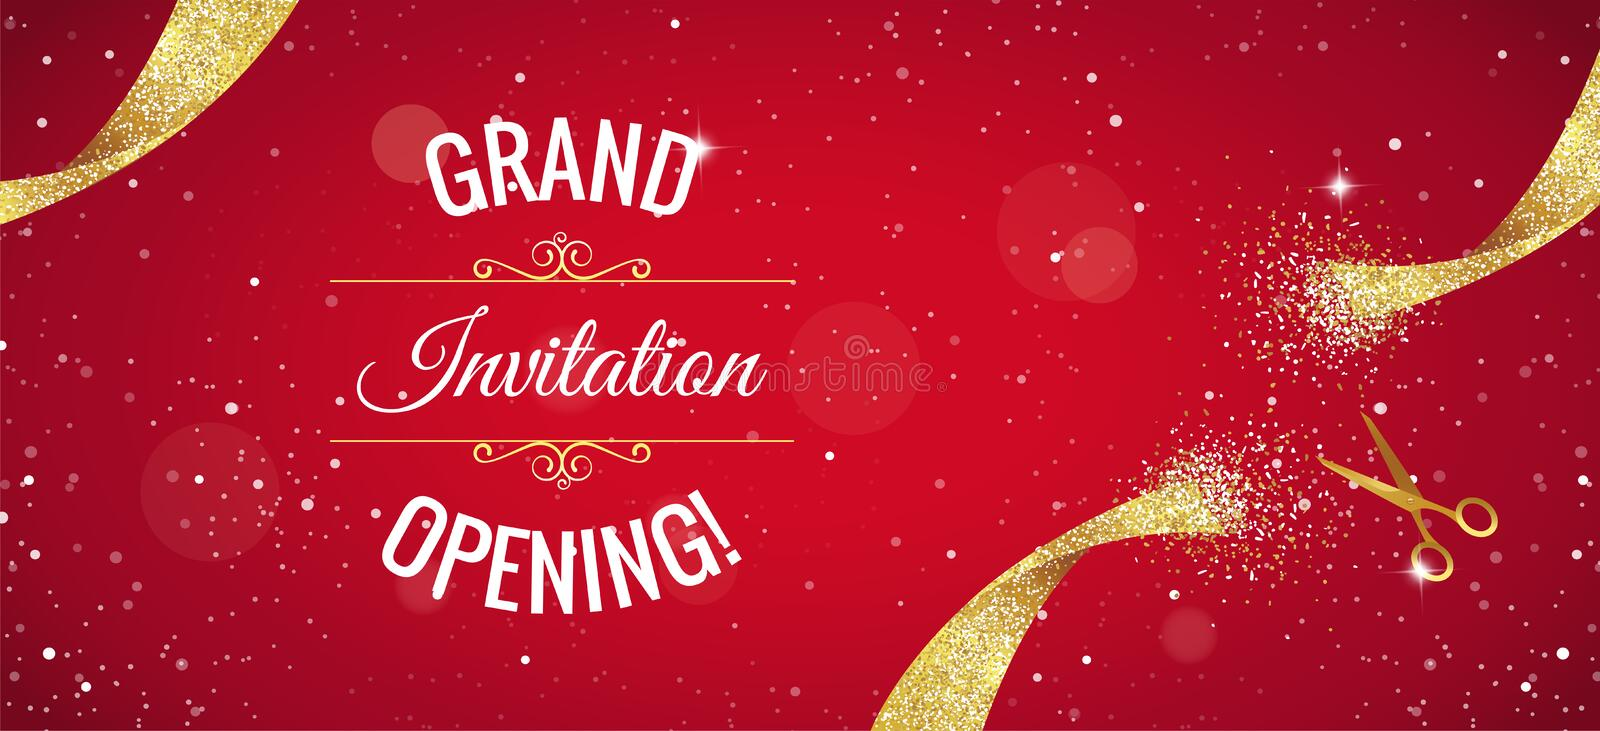 Grand opening horizontal banner with gold sparkles. Grand opening horizontal banner. Text with confetti, golden splashes and ribbons.Gold sparkles. Elegant